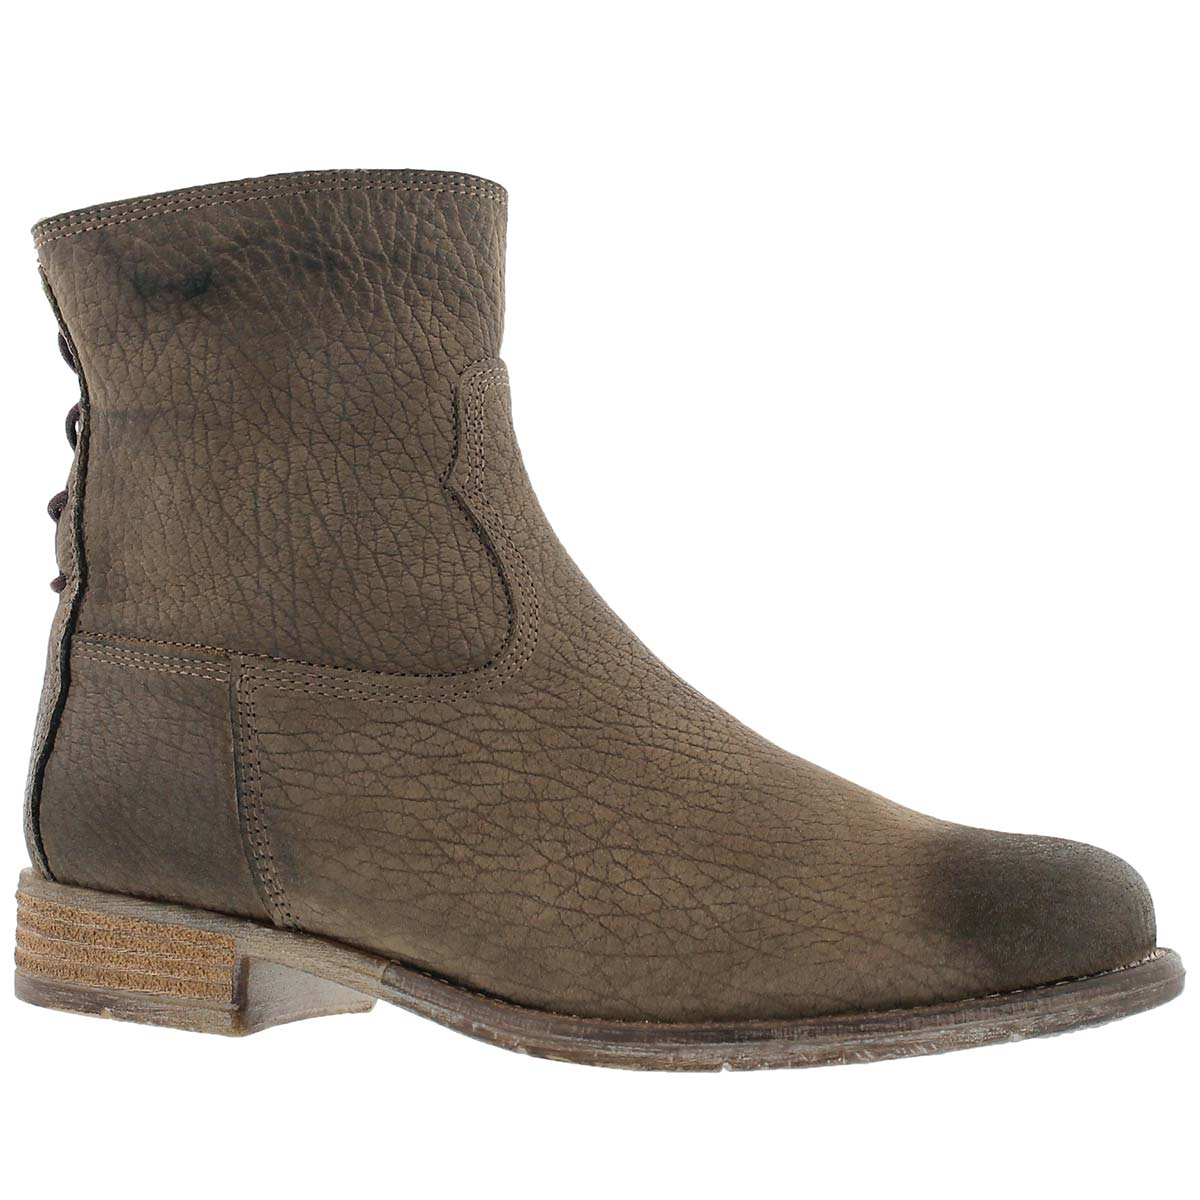 Lds Sienna 01 taupe zip up ankle boot